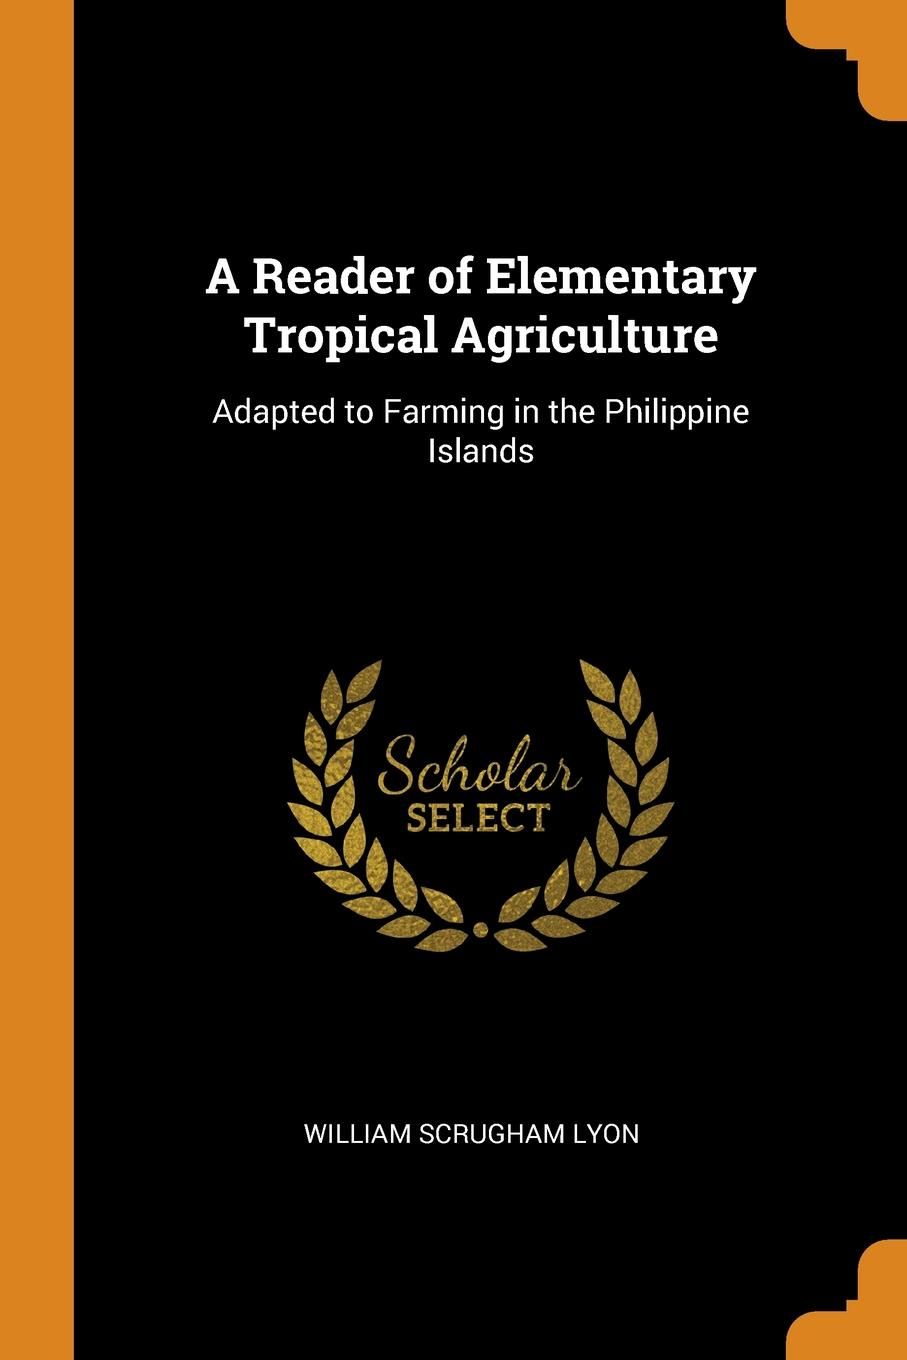 A Reader of Elementary Tropical Agriculture. Adapted to Farming in the Philippine Islands